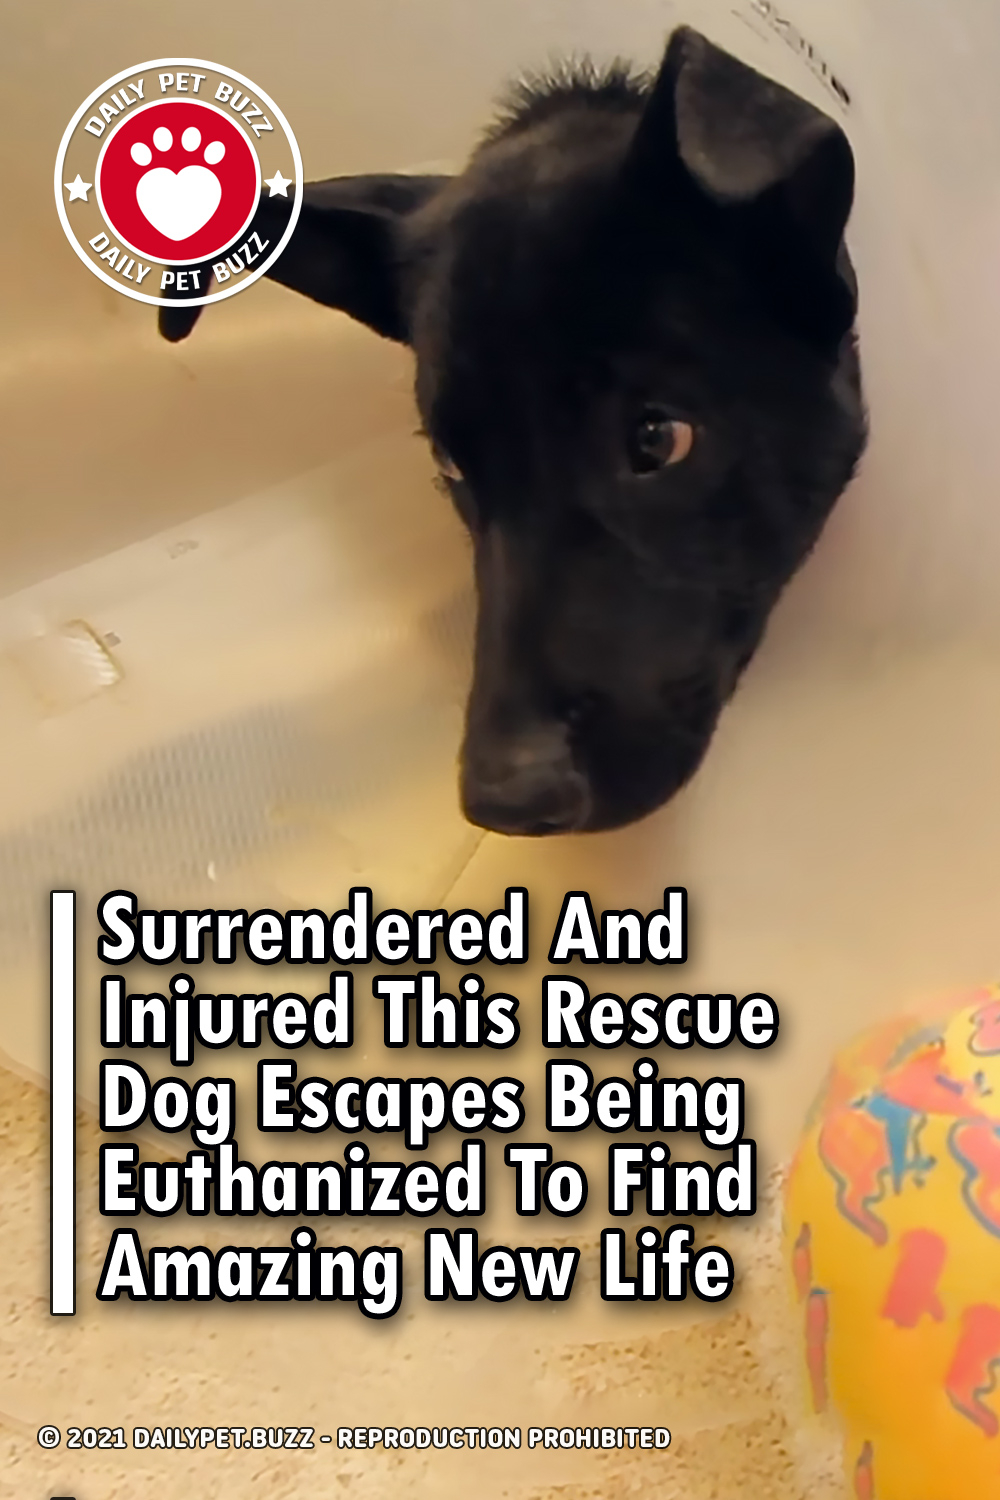 Surrendered And Injured This Rescue Dog Escapes Being Euthanized To Find Amazing New Life